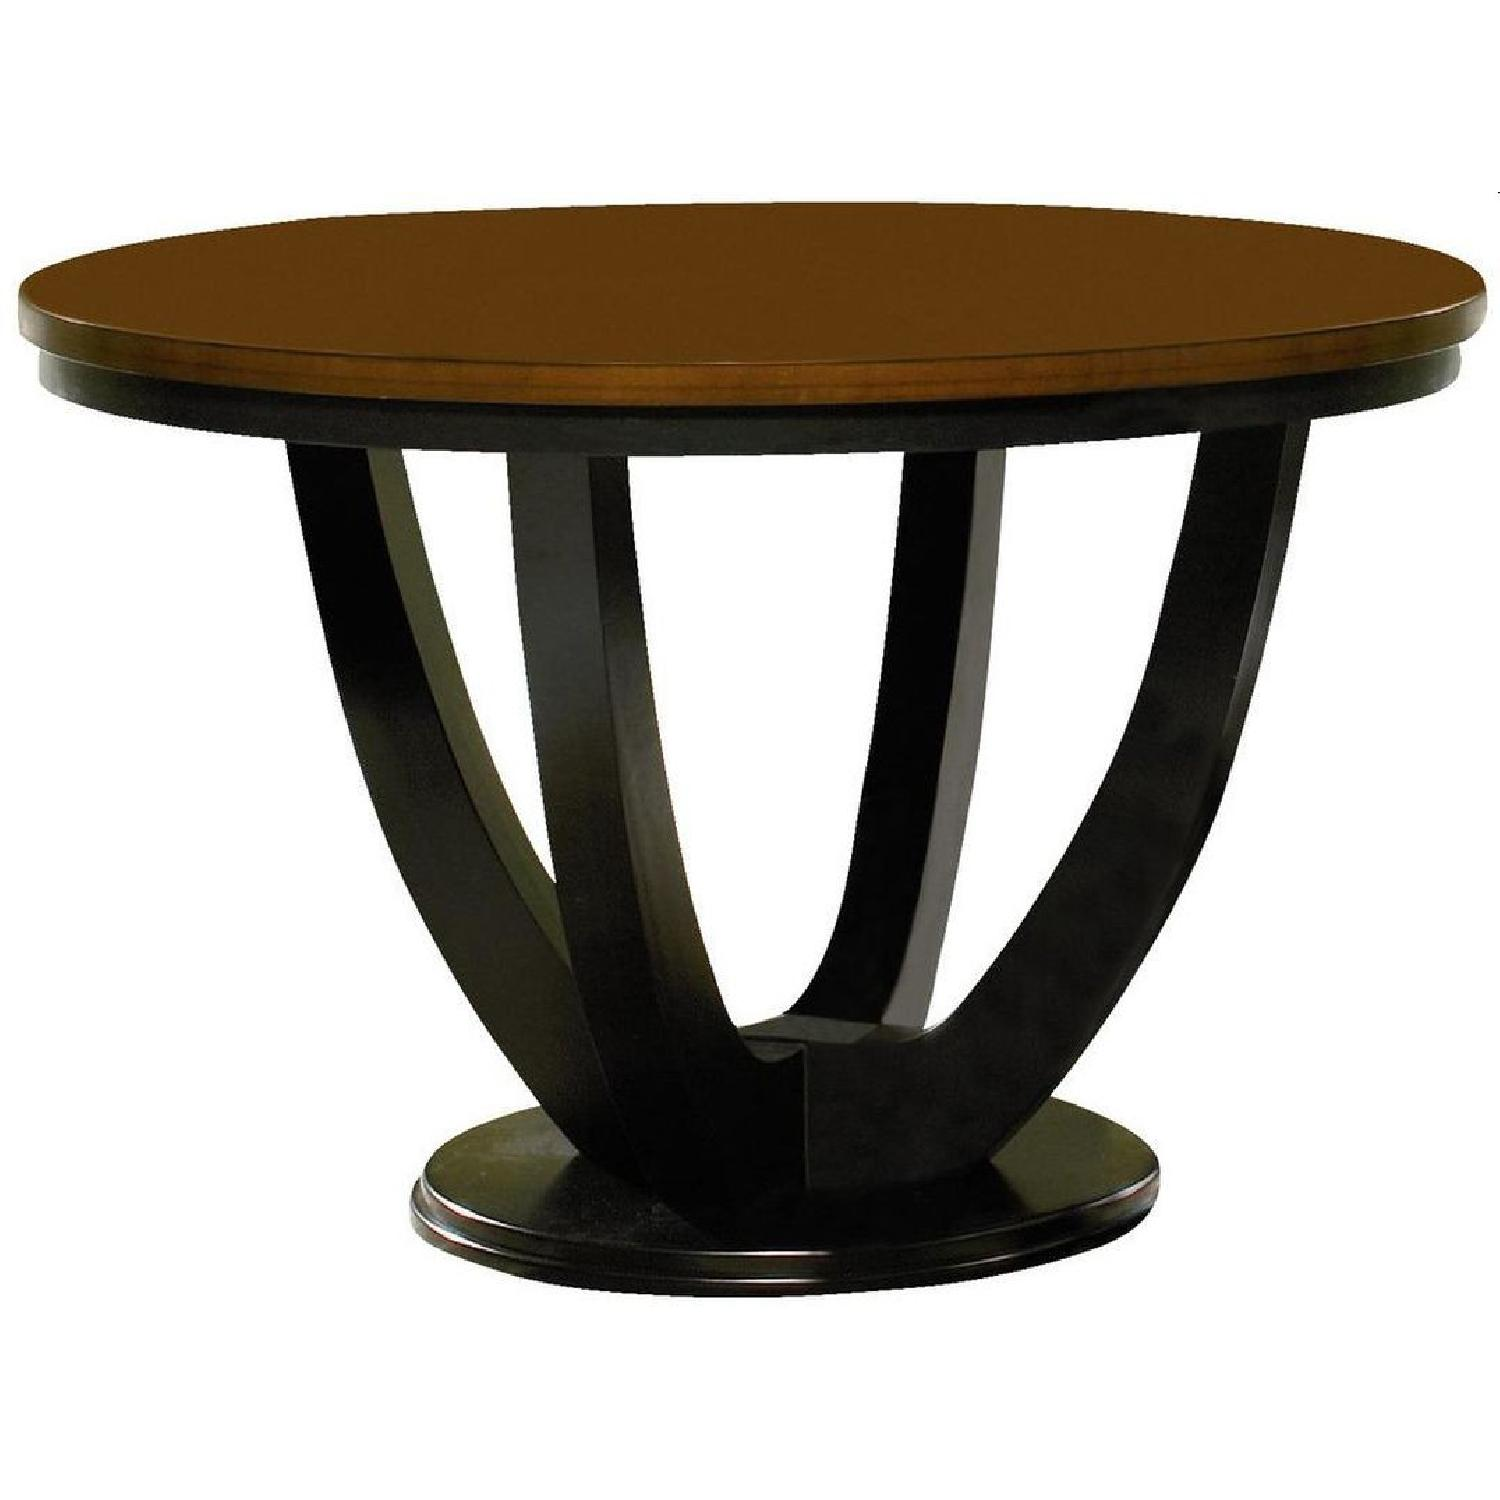 Bohemian Style Round Dining Table w/ Hand-Hammered Iron Top - image-11